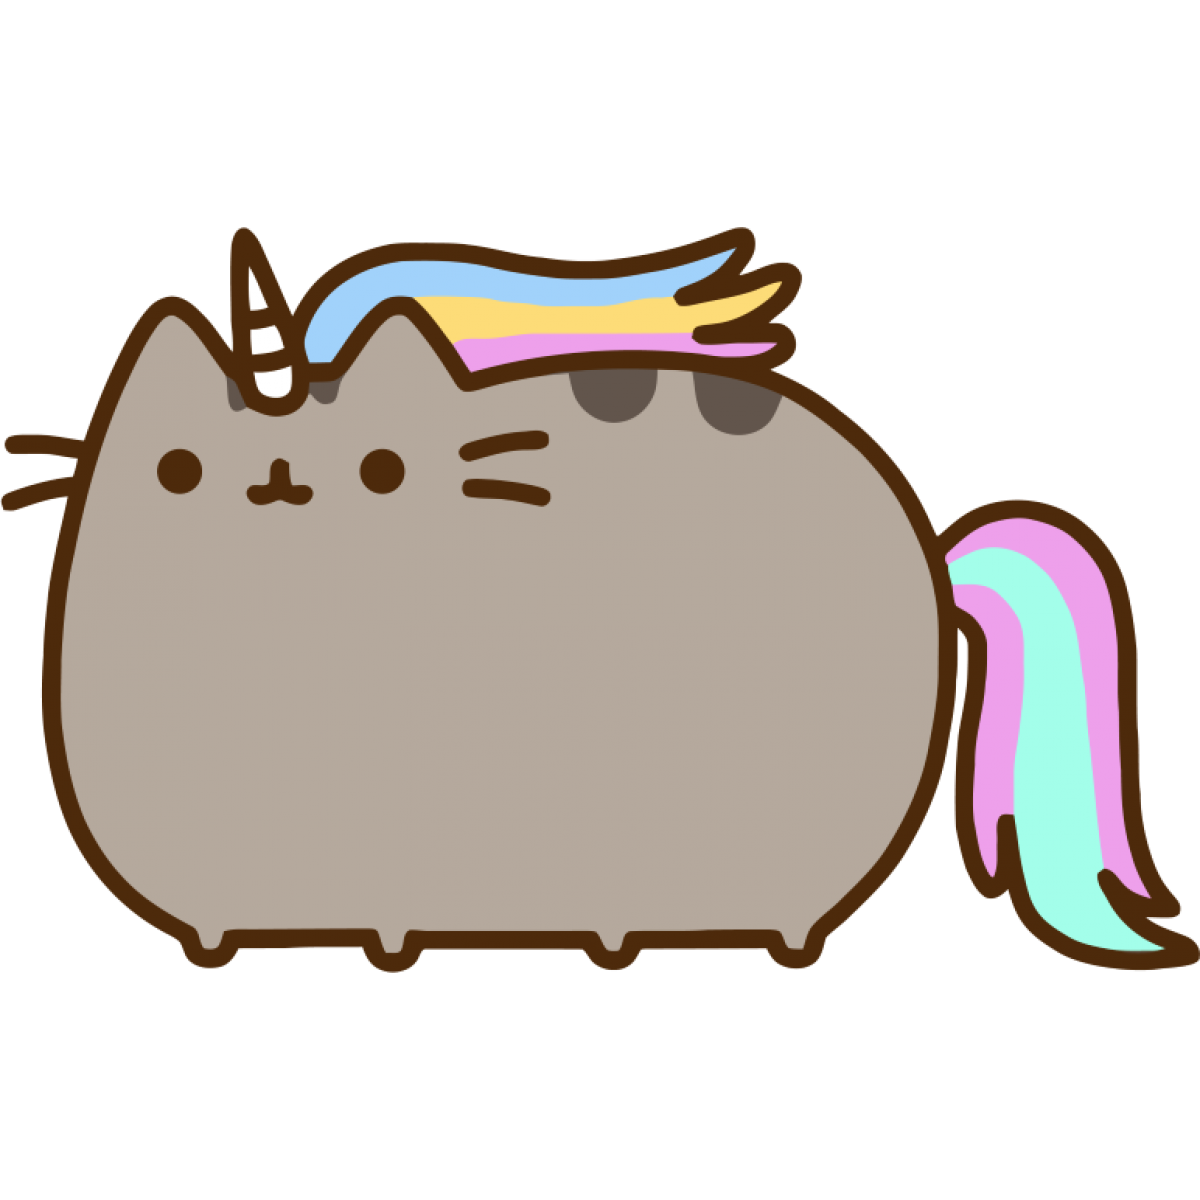 Food Snout Gund Pusheen Cat PNG Image High Quality PNG Image